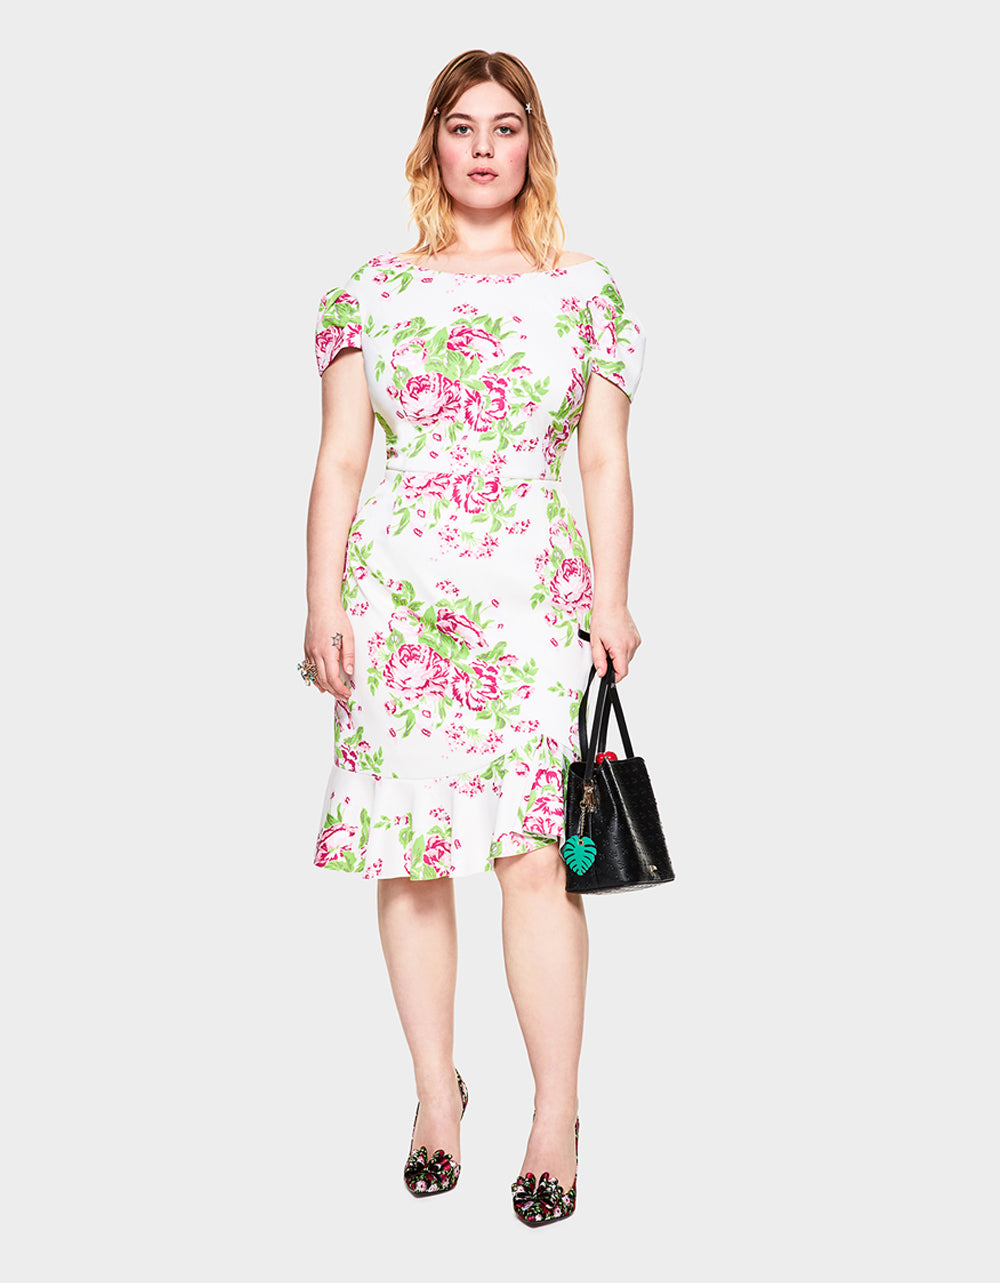 ROMANTIC GARDEN DRESS MULTI (EXTENDED SIZING) - APPAREL - Betsey Johnson